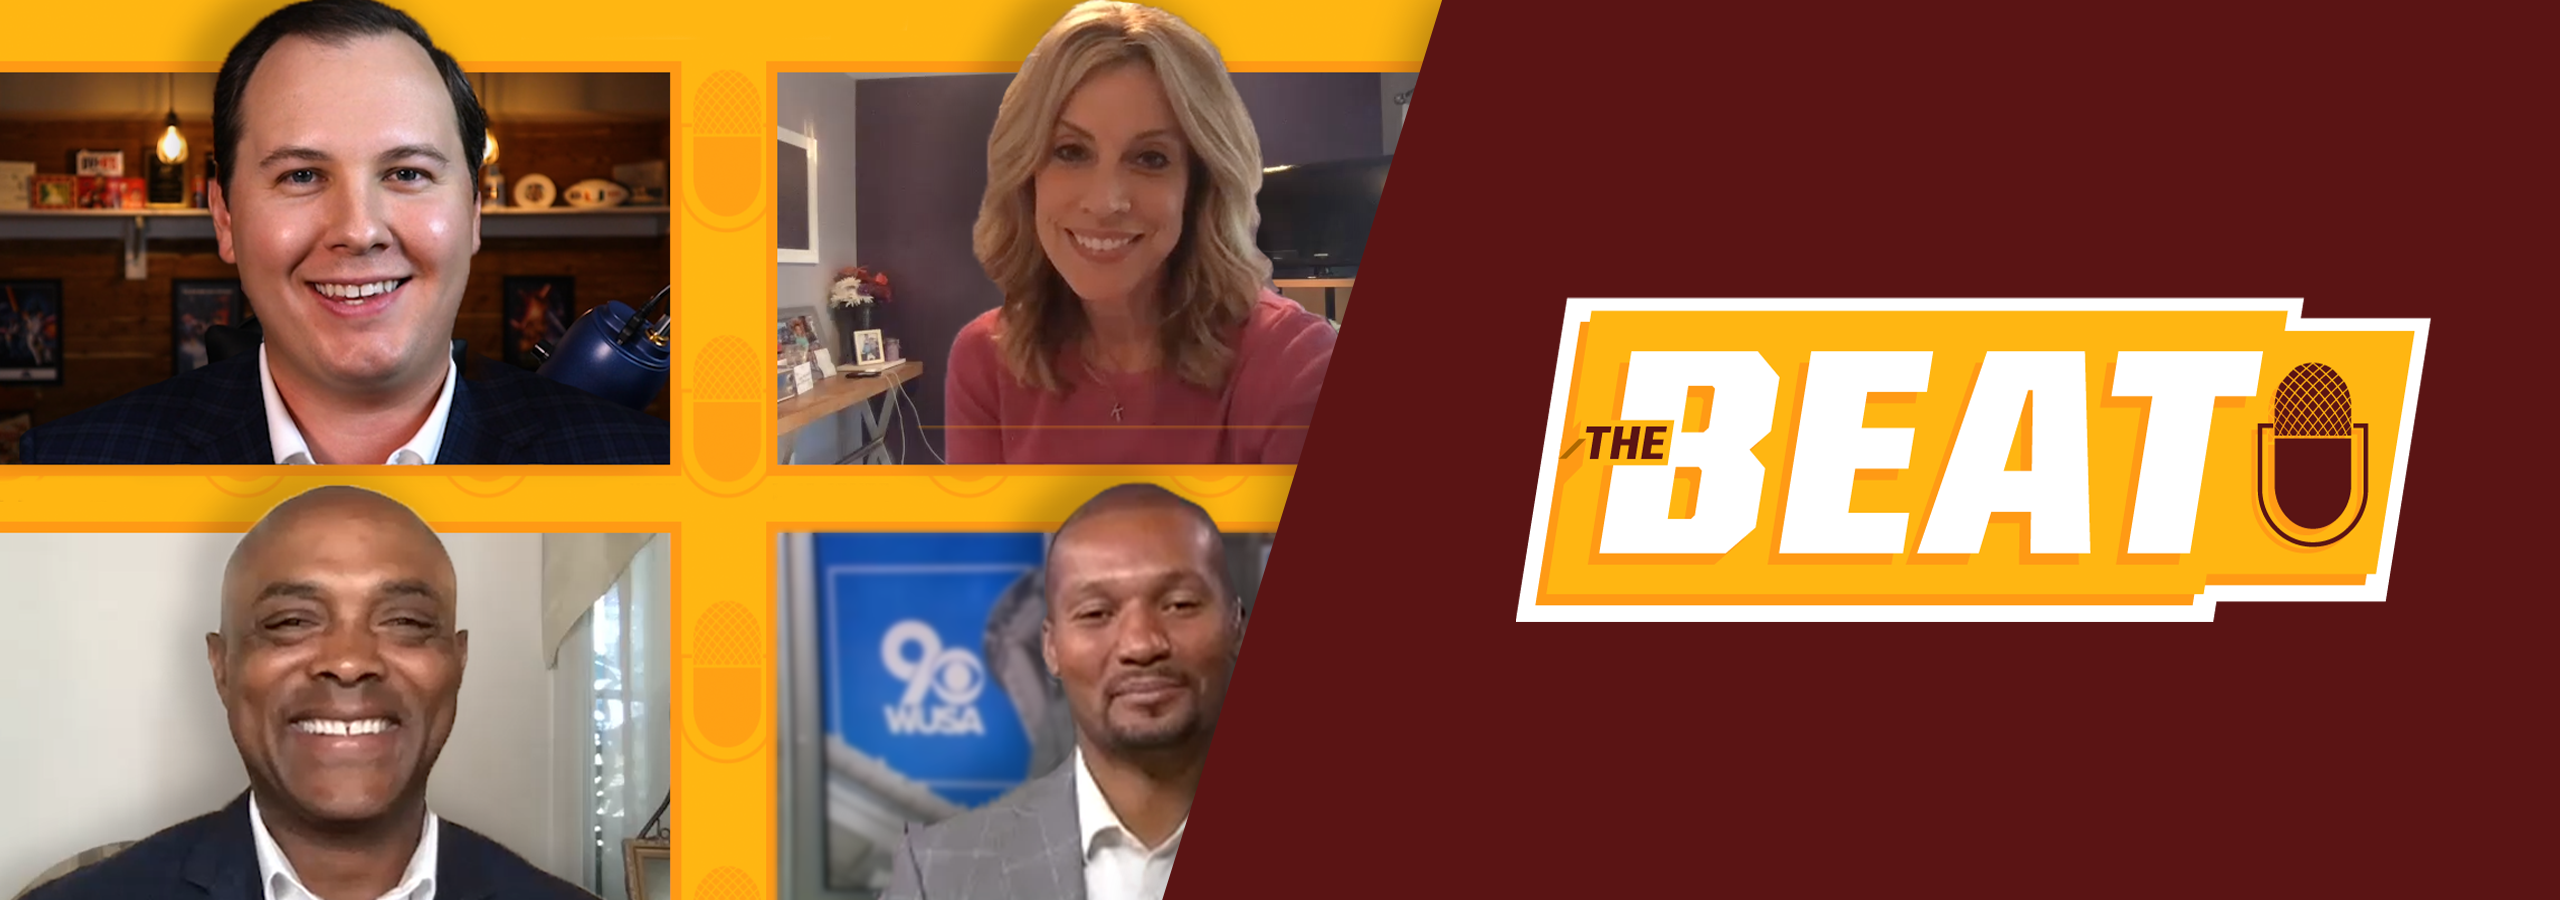 Join host Chip Brierre and some of the biggest media members in the NFL as they share unfiltered reactions to all the top storylines surrounding the Washington Football Team and latest news from across the NFL. The Beat drops every Saturday.